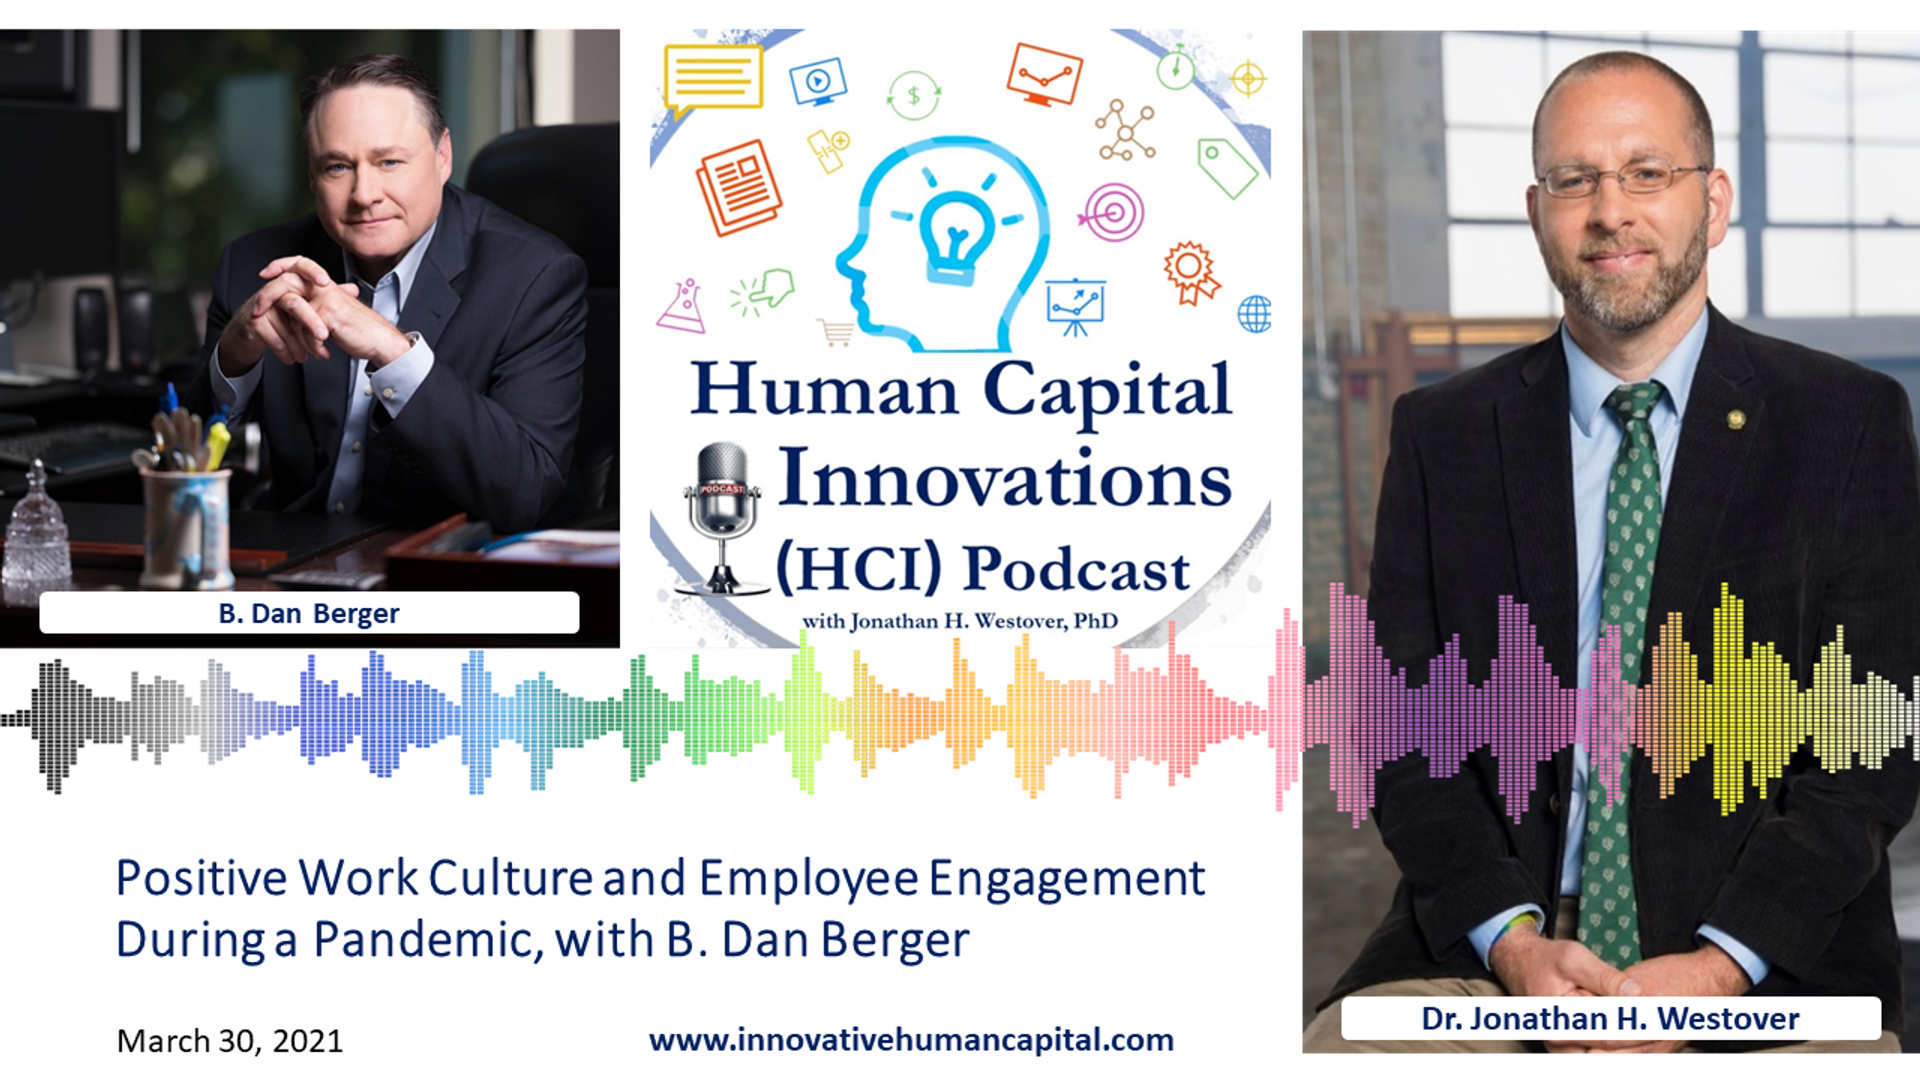 Positive Work Culture and Employee Engagement During a Pandemic